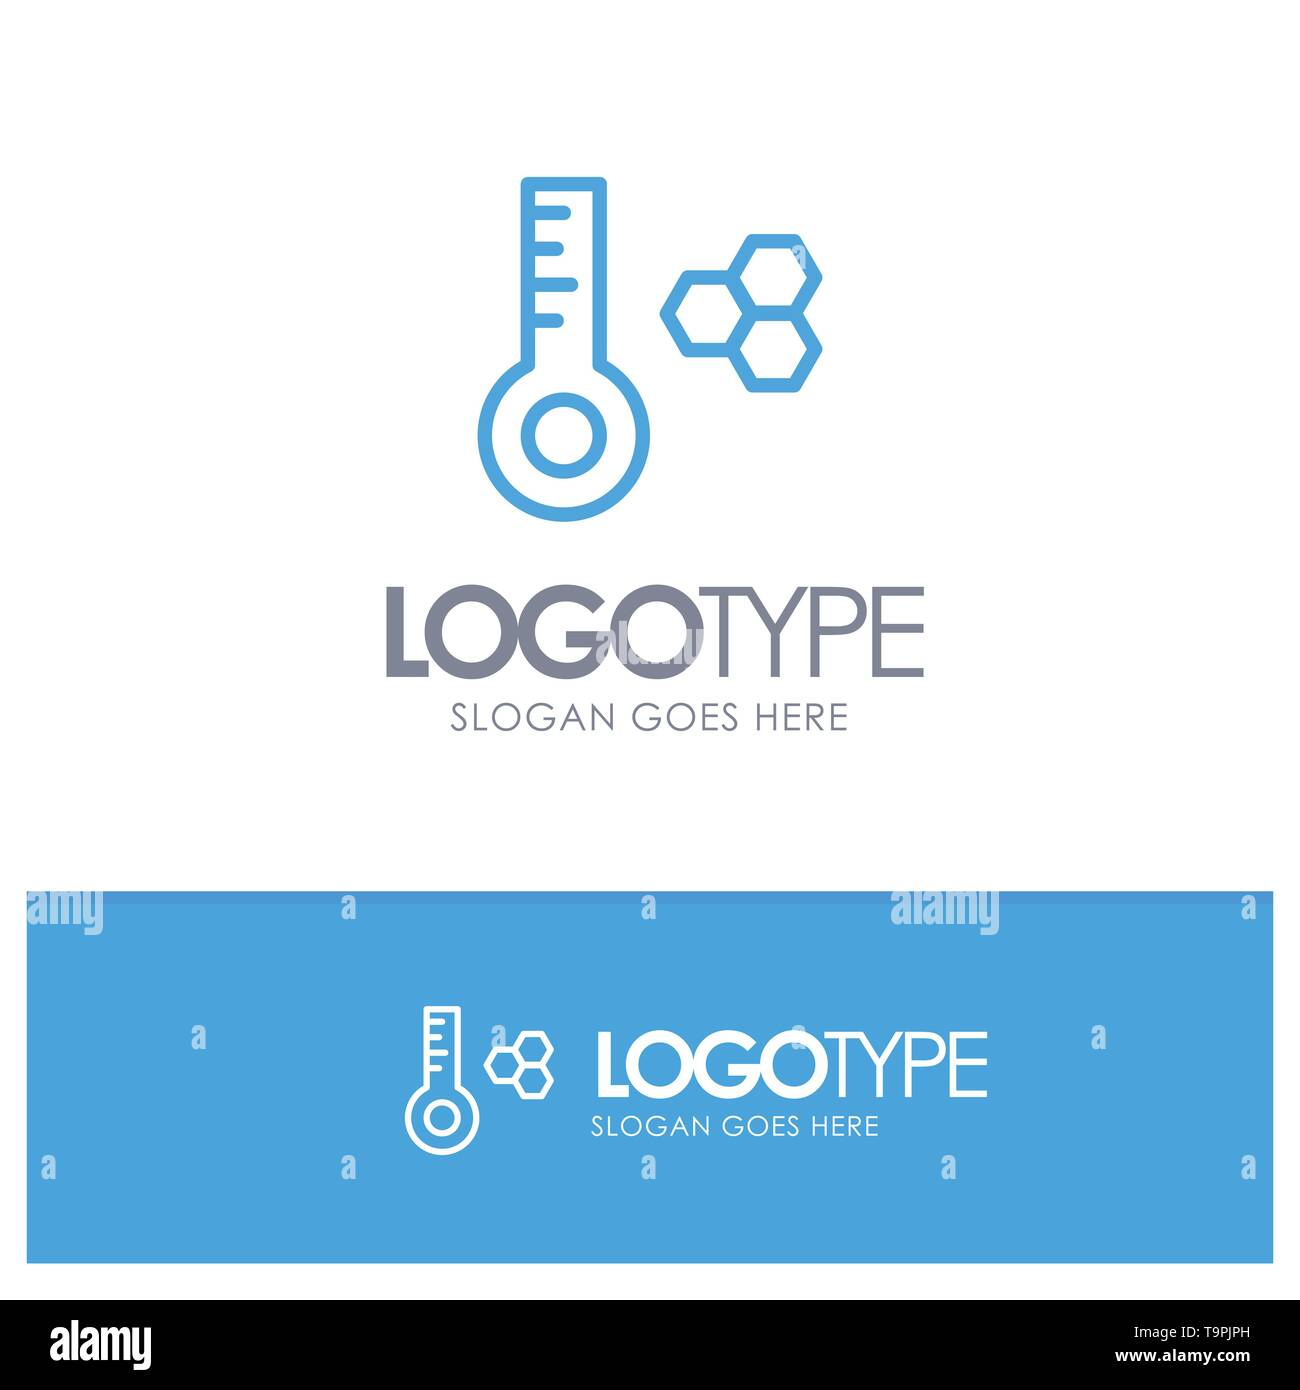 Temperature, Temperature Meter, Thermometer Blue Outline Logo Place for Tagline - Stock Image